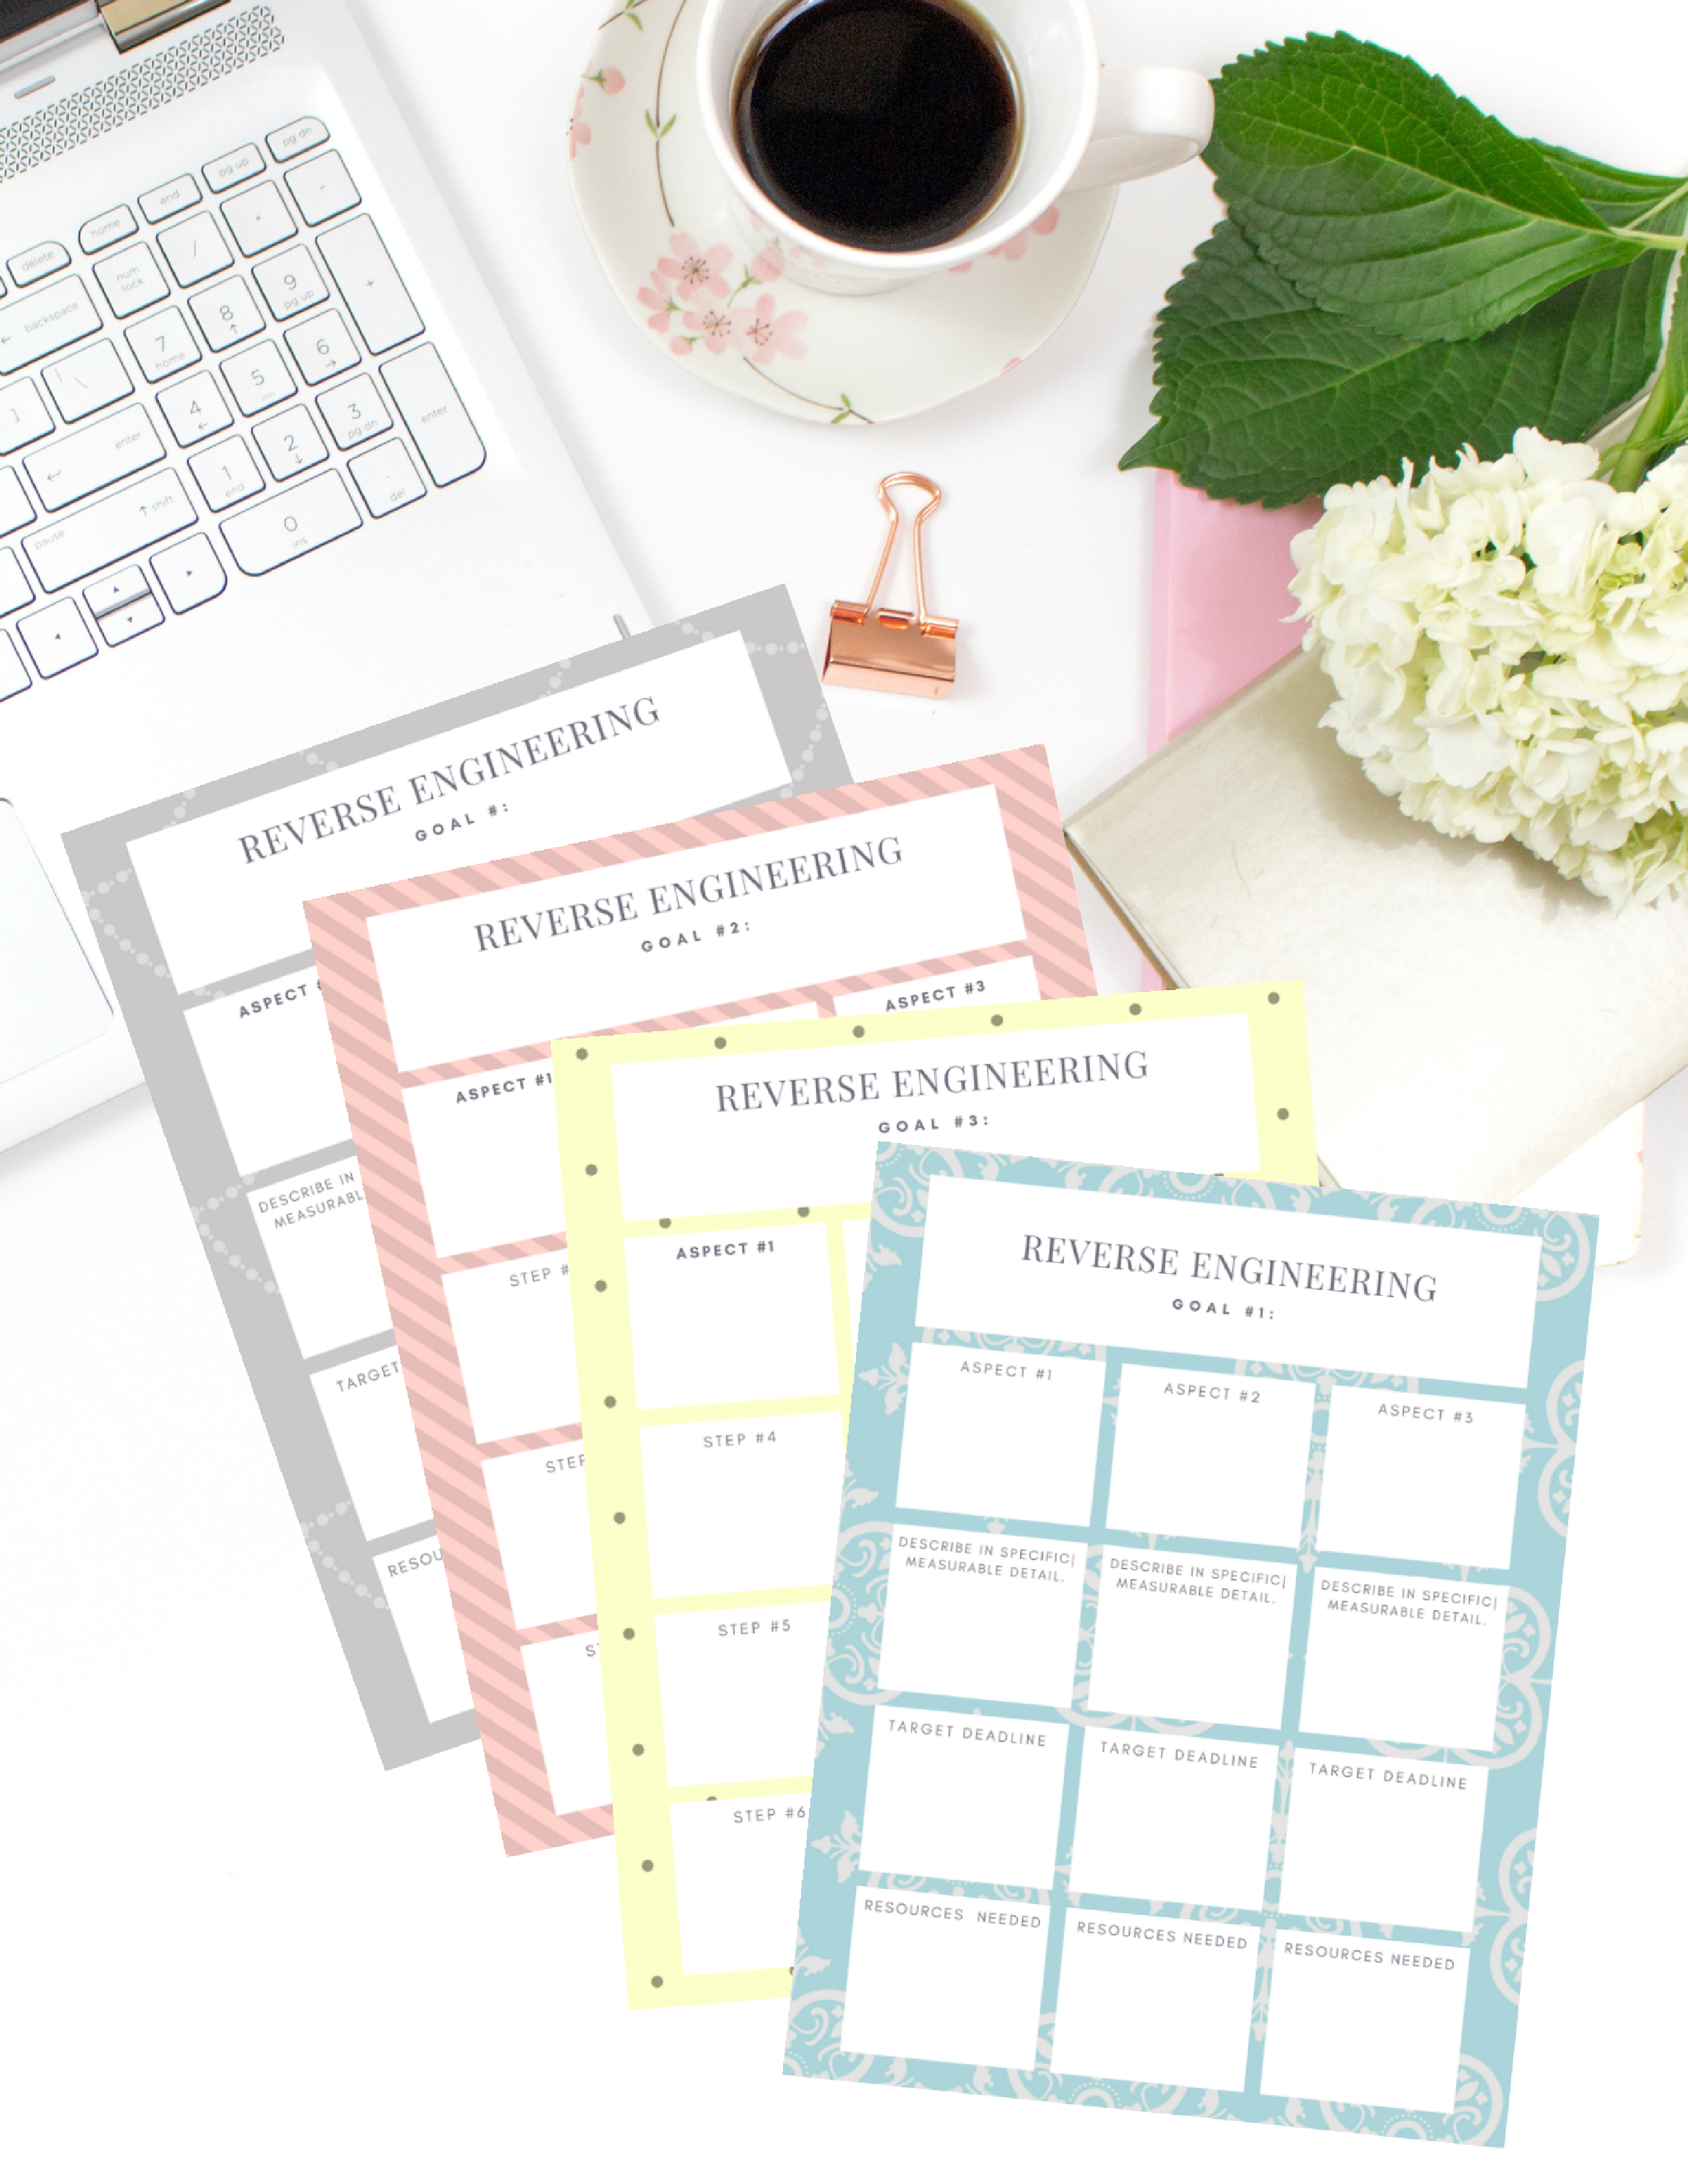 Reverse Engineering Goal Worksheet Free Printable Download